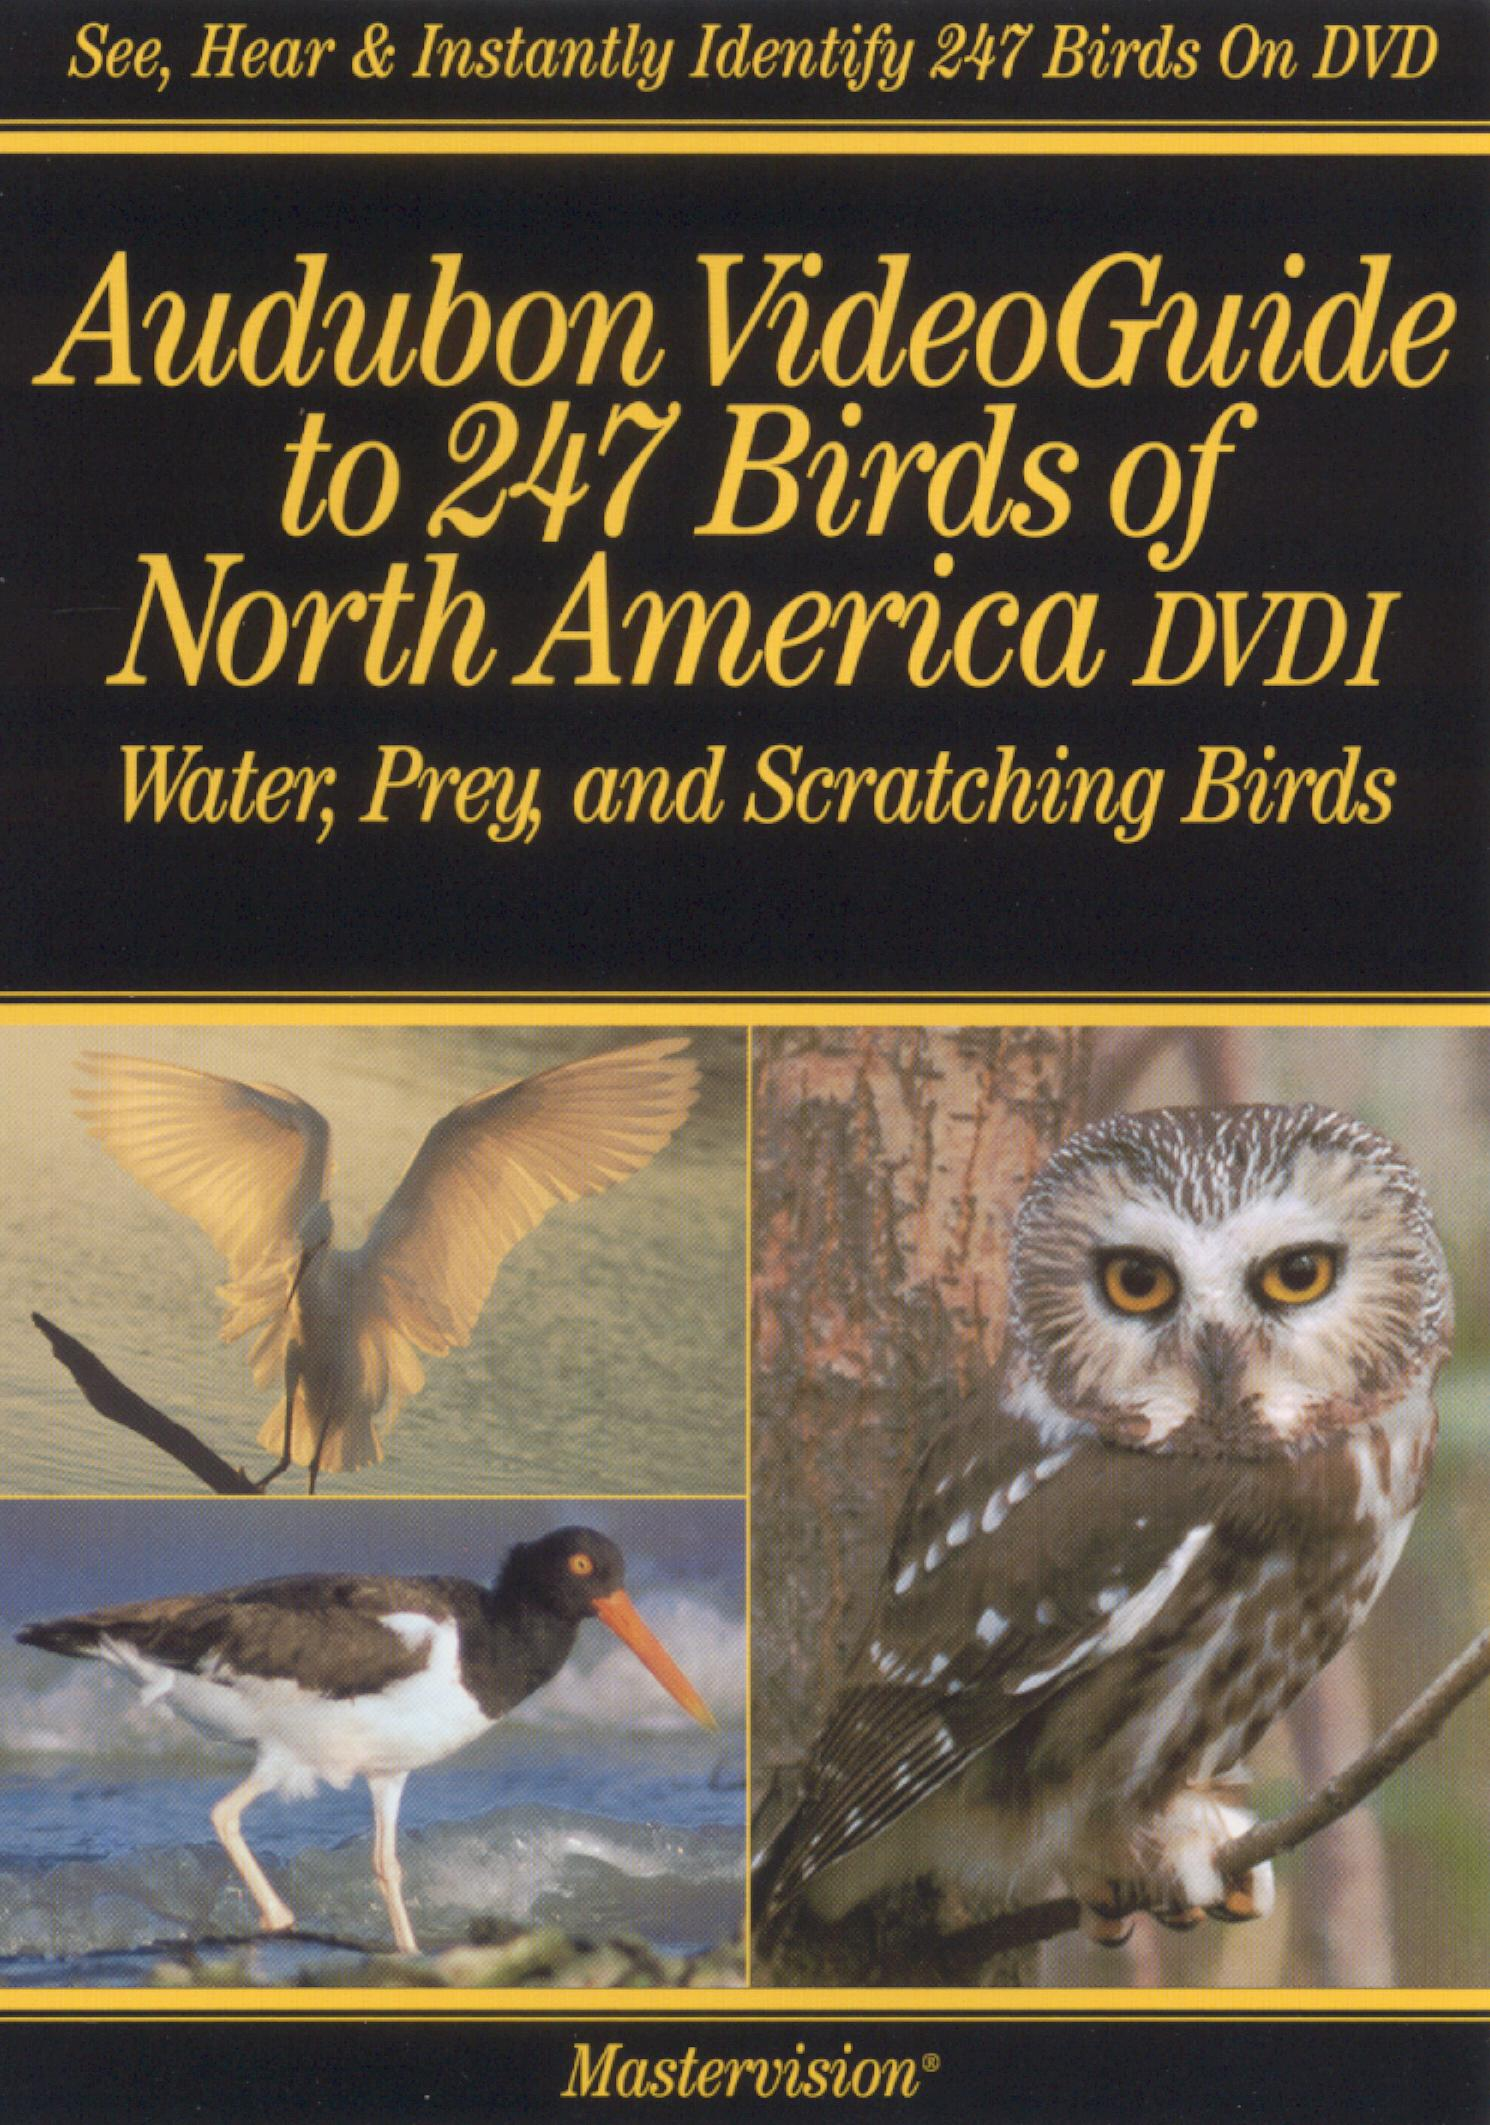 Audubon, Vol. 1: Video Guide to 247 Birds of North America